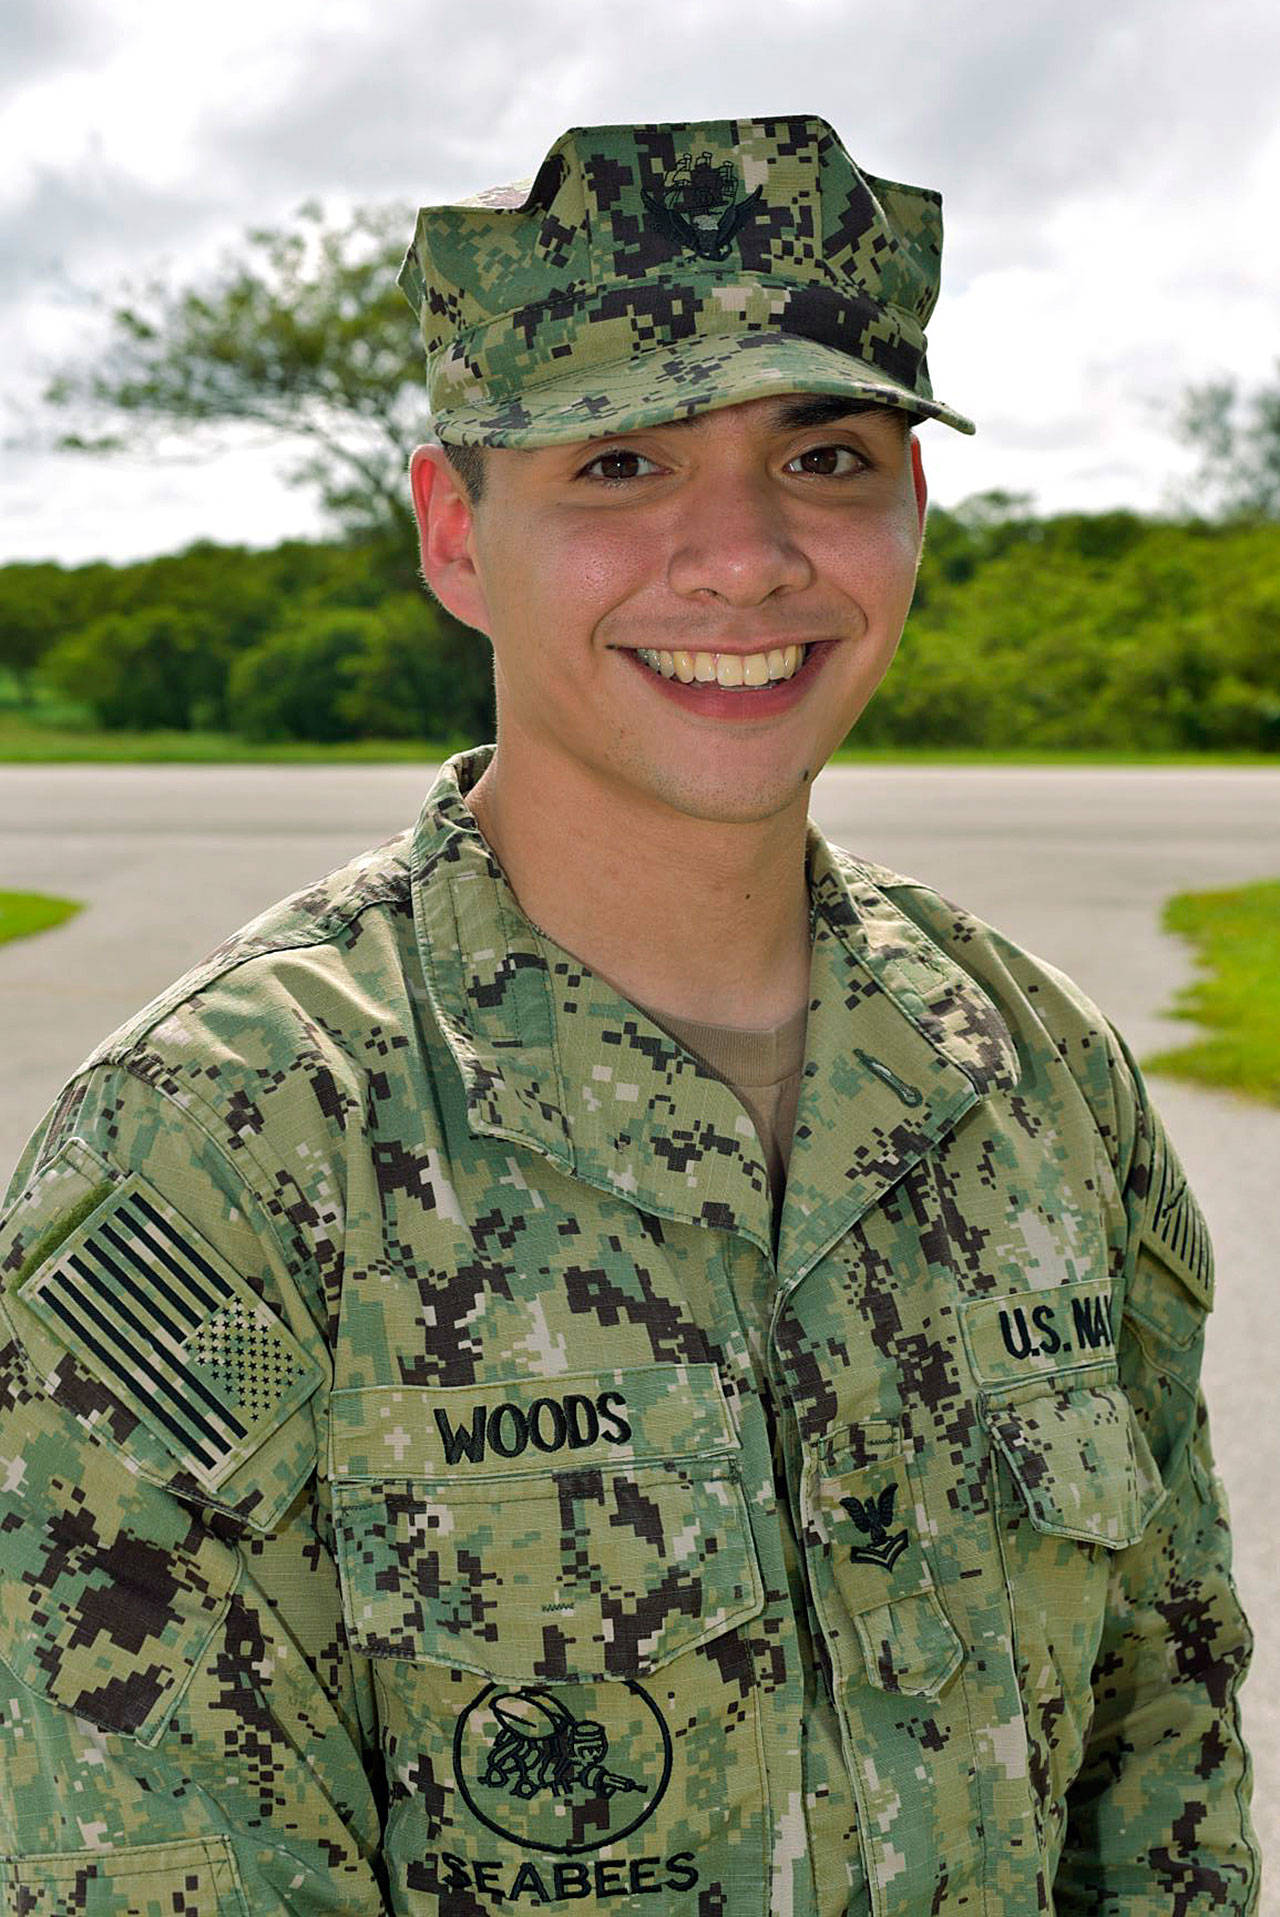 The Navy's Andrew Woods. COURTESY PHOTO, Mass Communication Specialist 1st Class Heidi Cheek